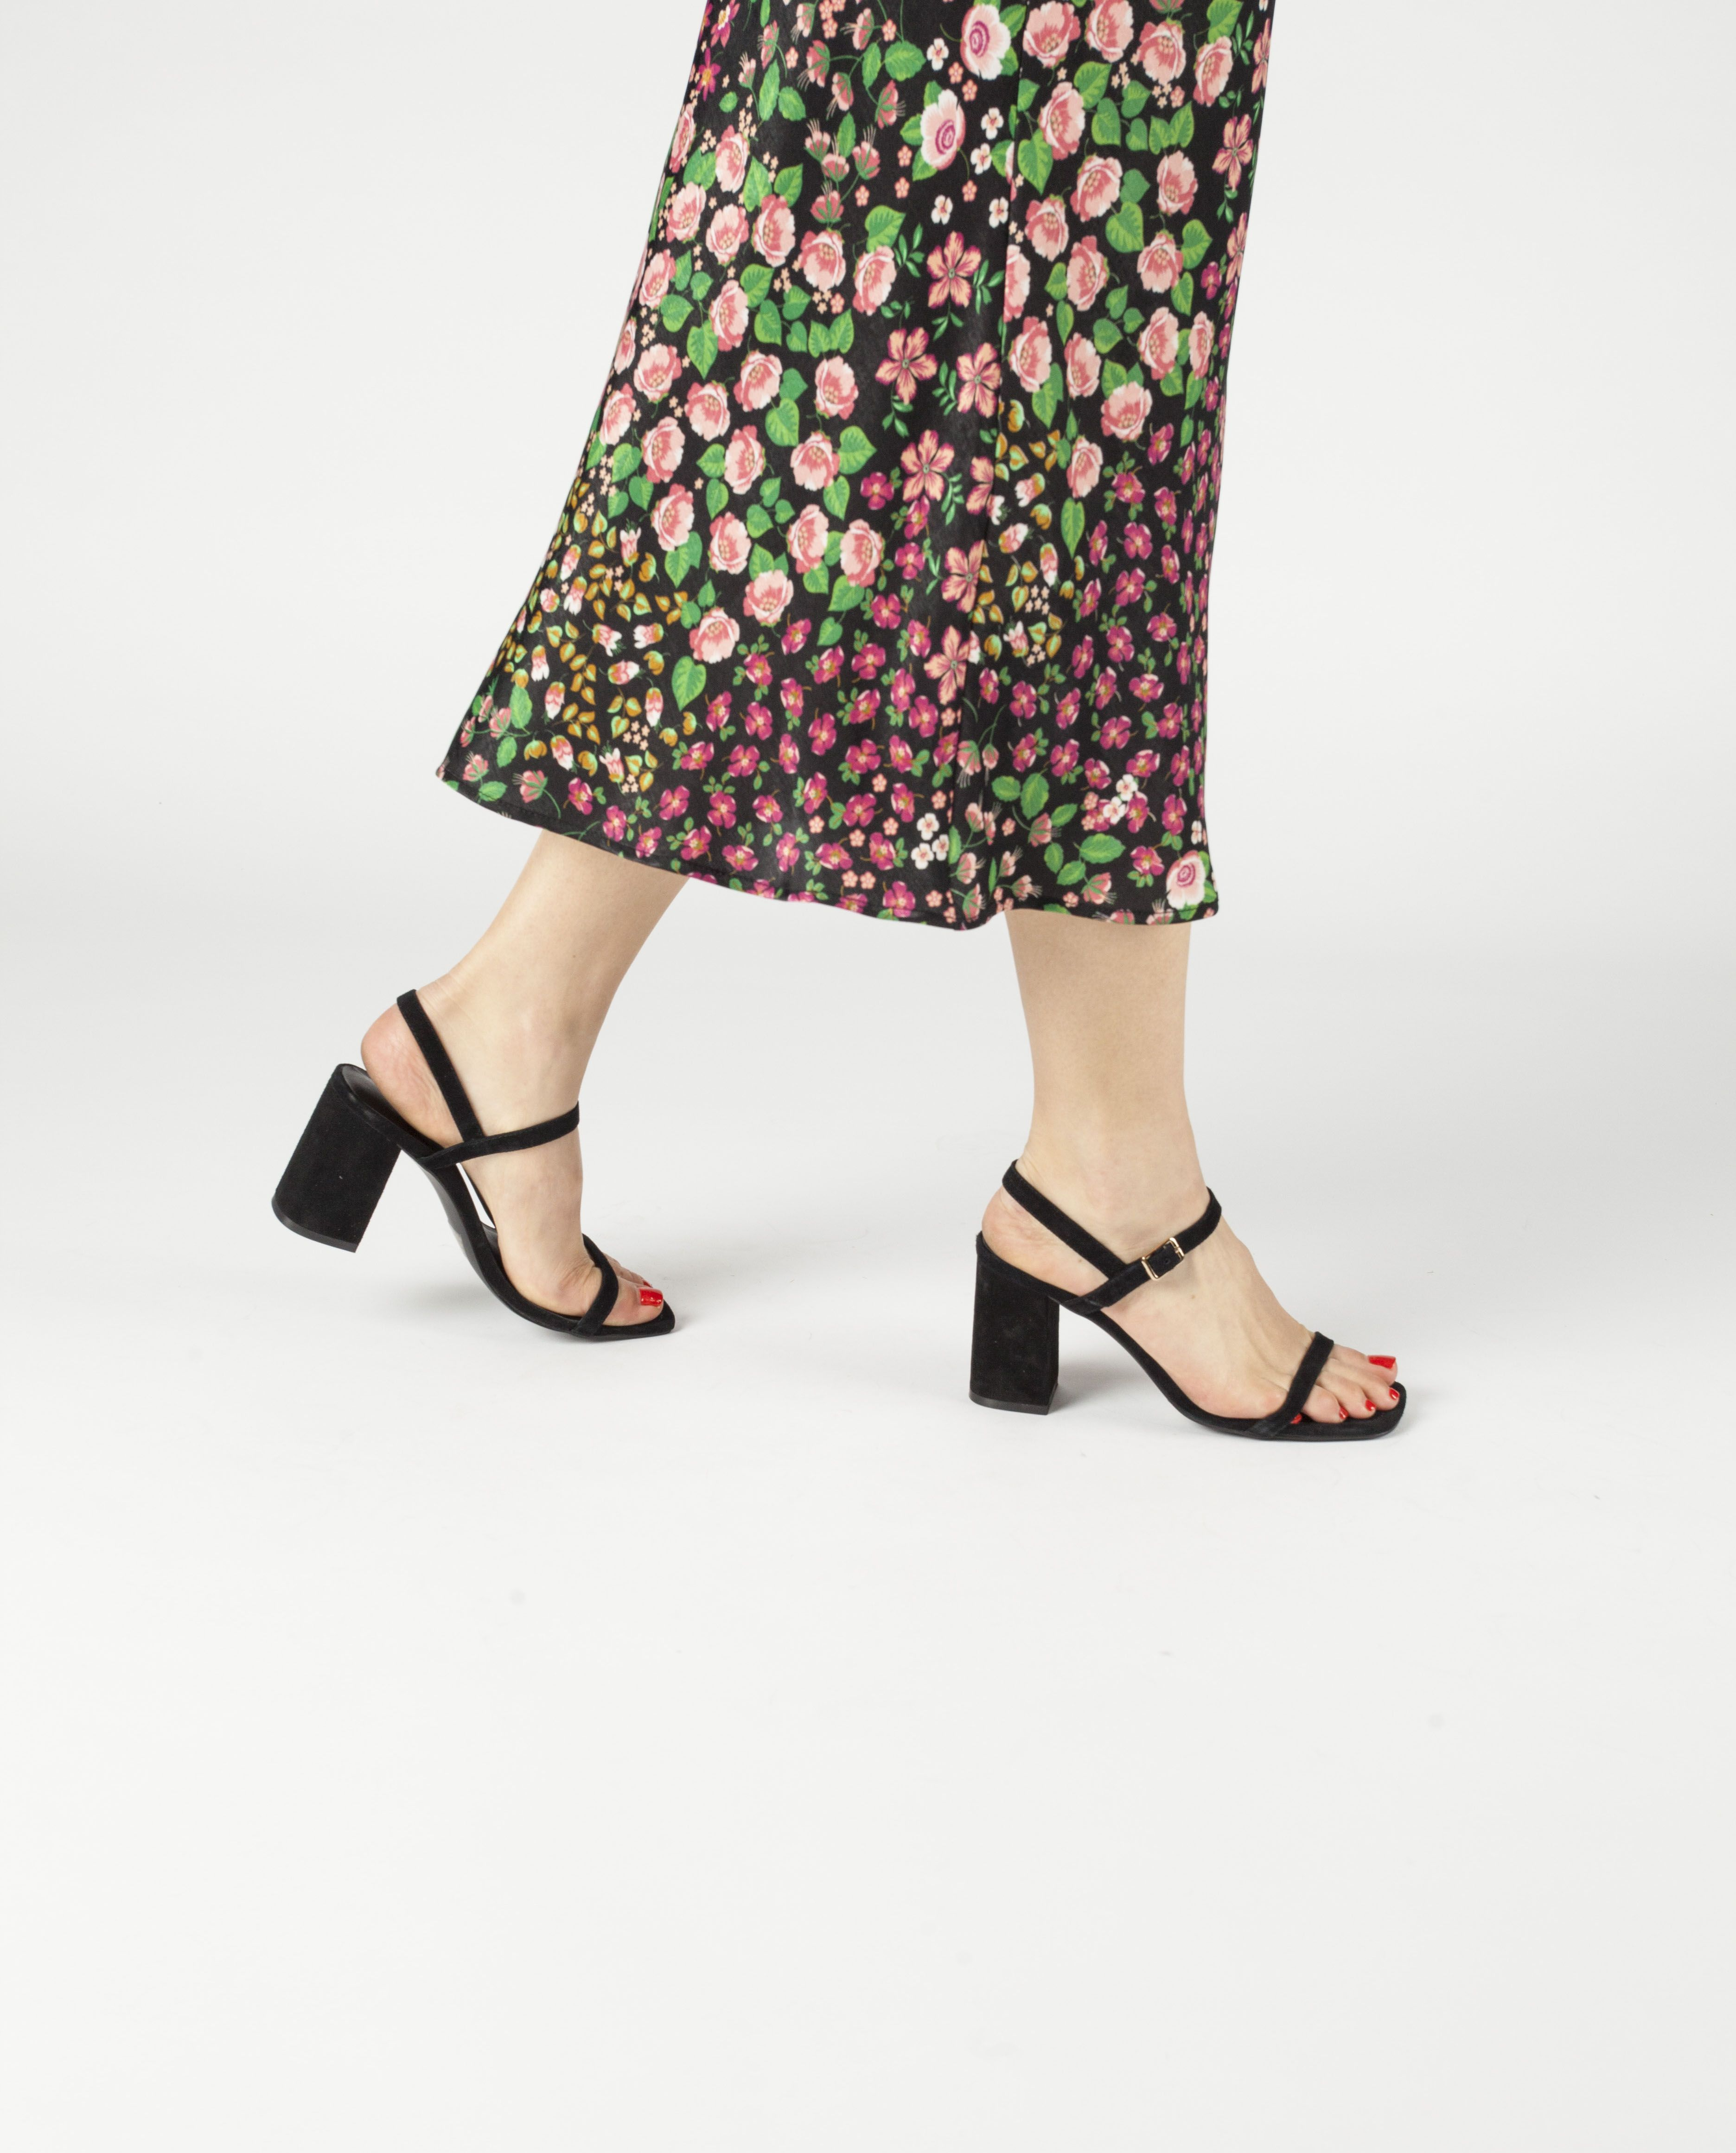 A Chic And Simple Black Suede Strappy Sandal By 2 Baia Vista The Ronnie Has A Gold Buckle Fastening And Fe Strappy Sandals Heels Heels Suede Strappy Sandals